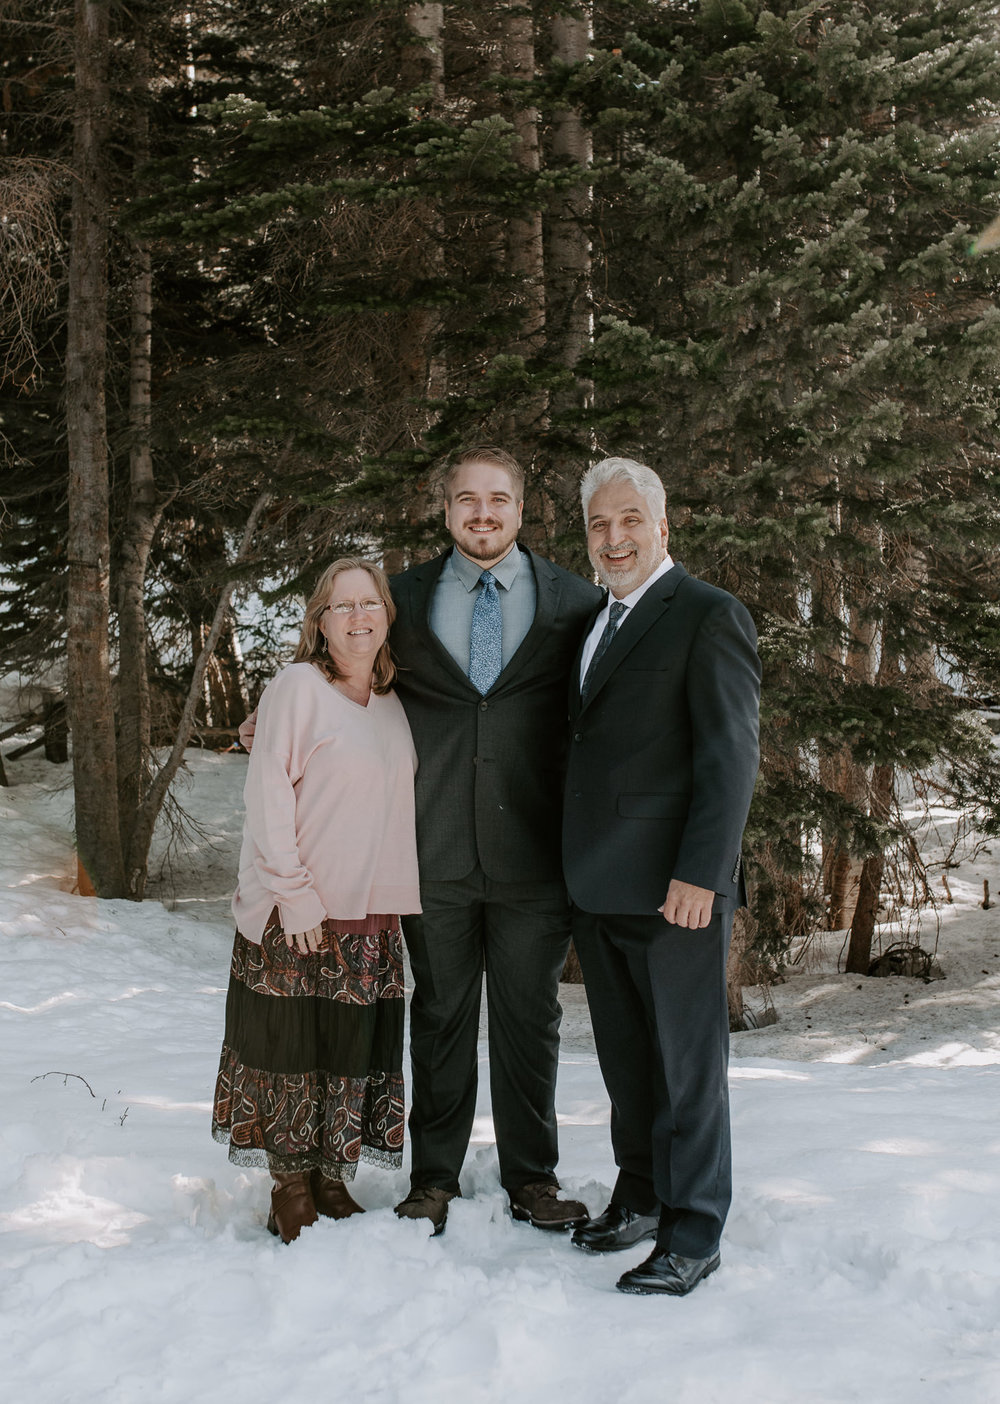 Adventure elopement photographer. Bear Lake elopement